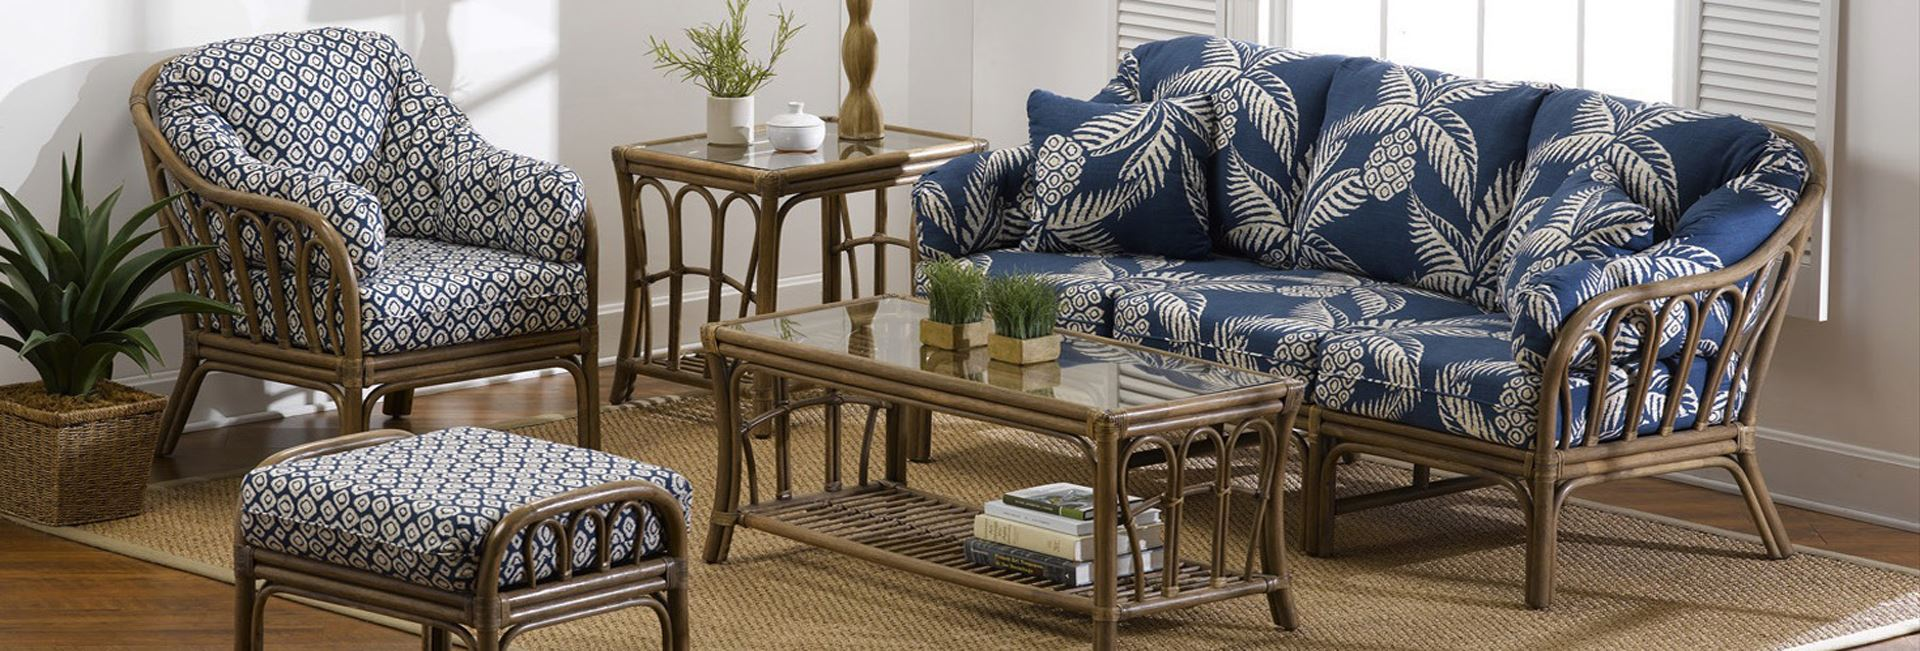 Classic Rattan Dartmouth Casual Furniture